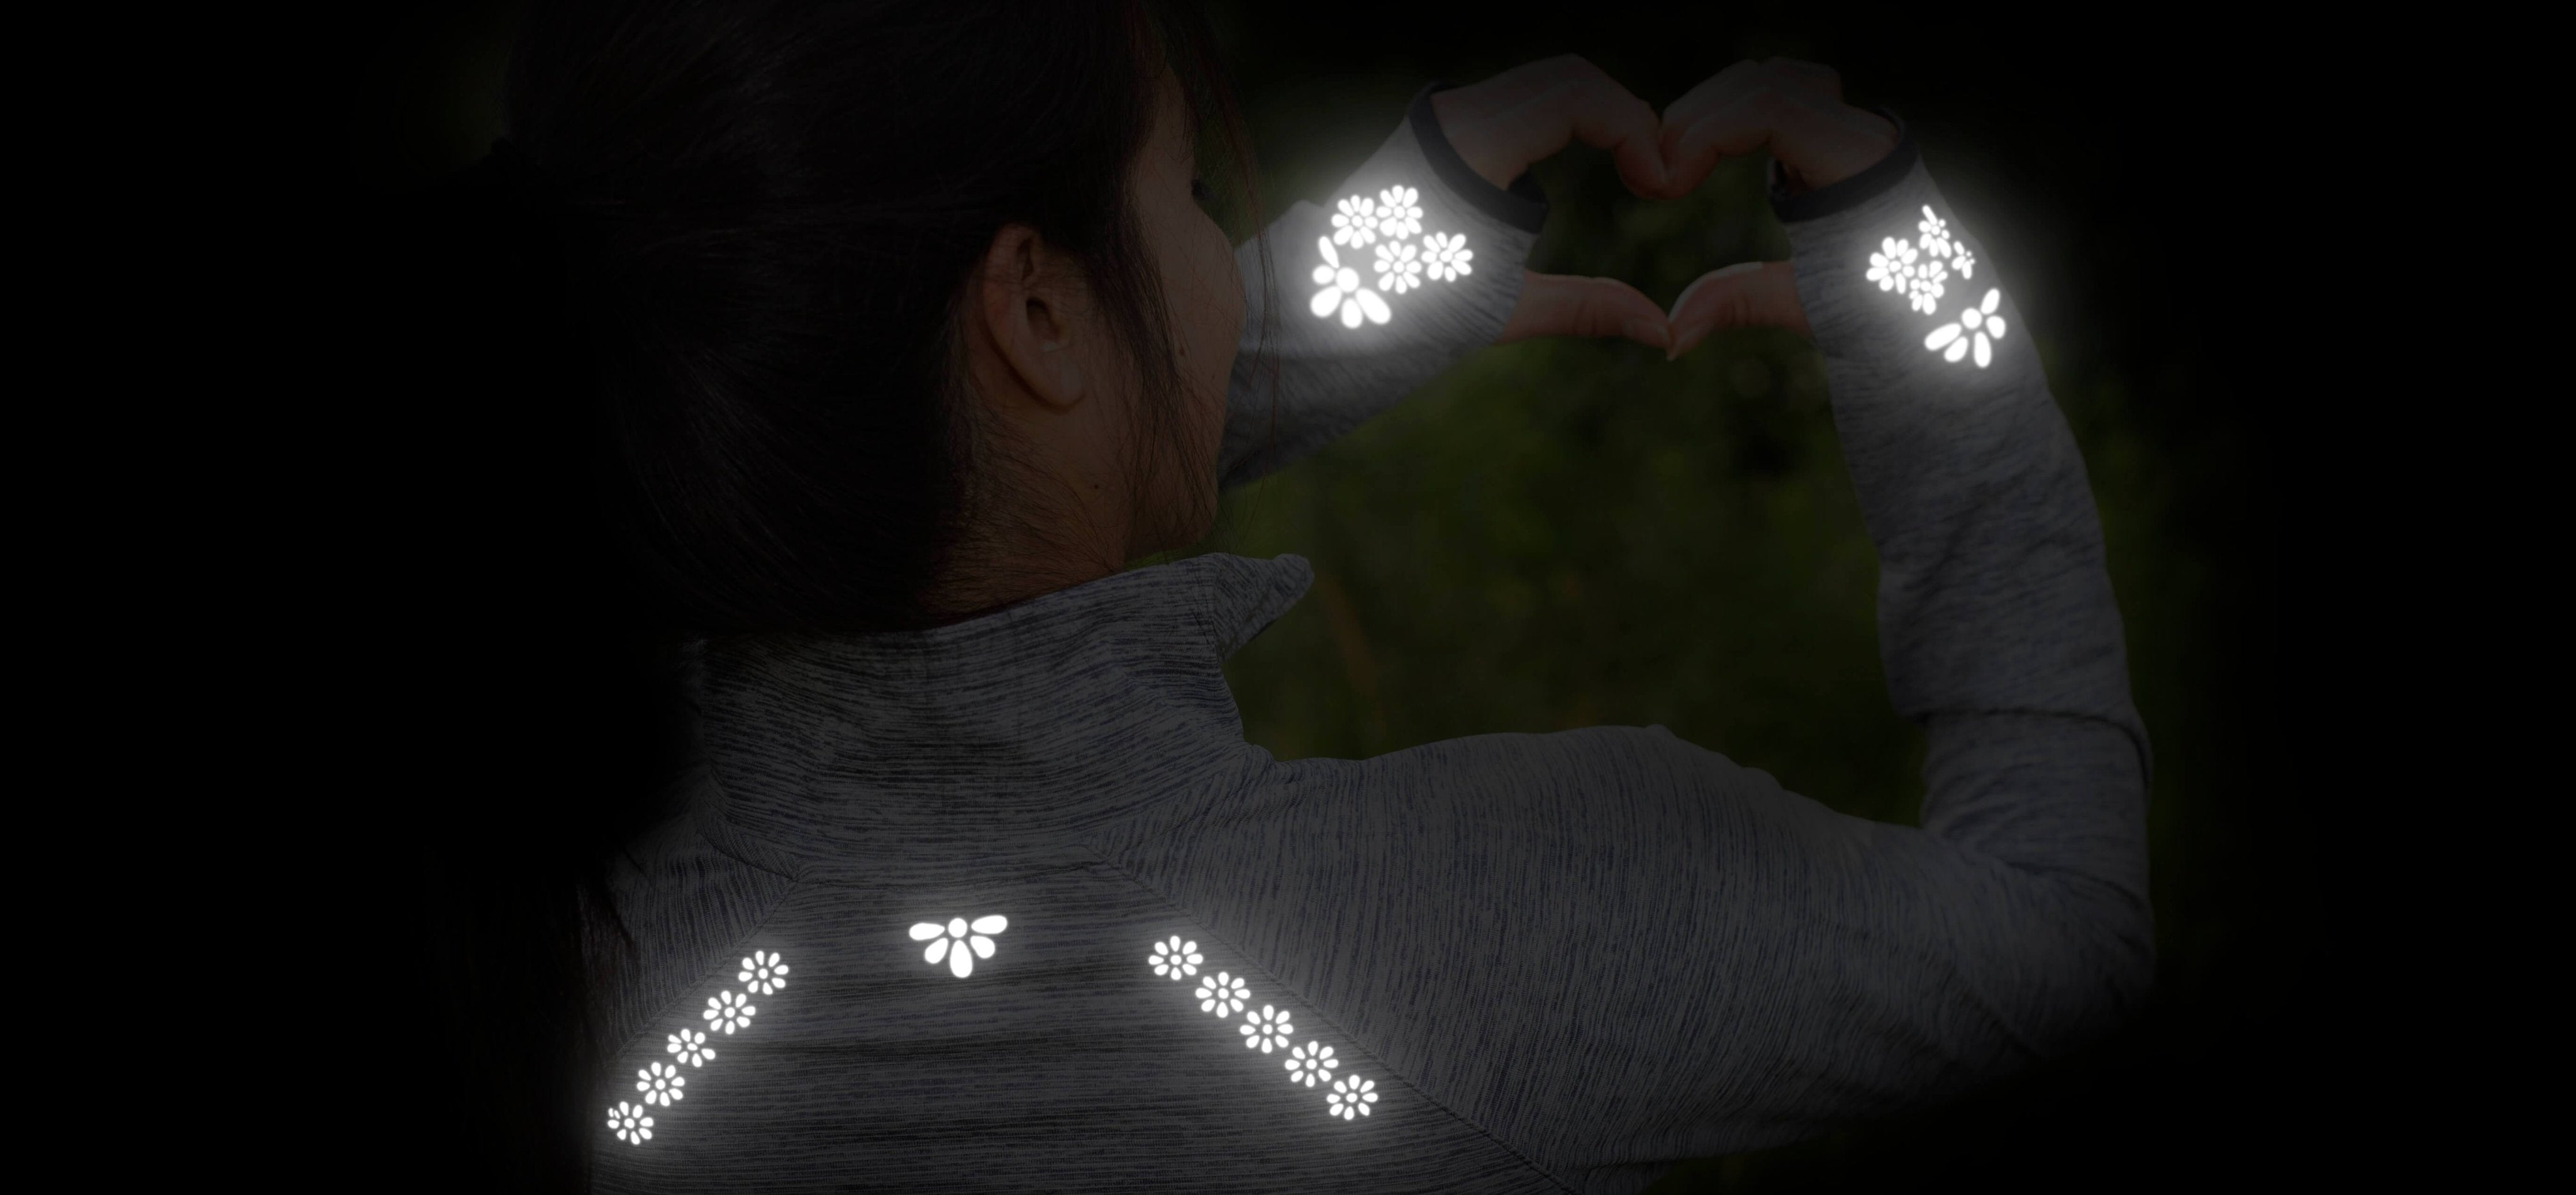 Flower Petals - Noktillu - Reflective Design - High Visibility. Ensuring high visibility at night, dusk, and dawn. Customizable on most fabric and gear you use outdoors.